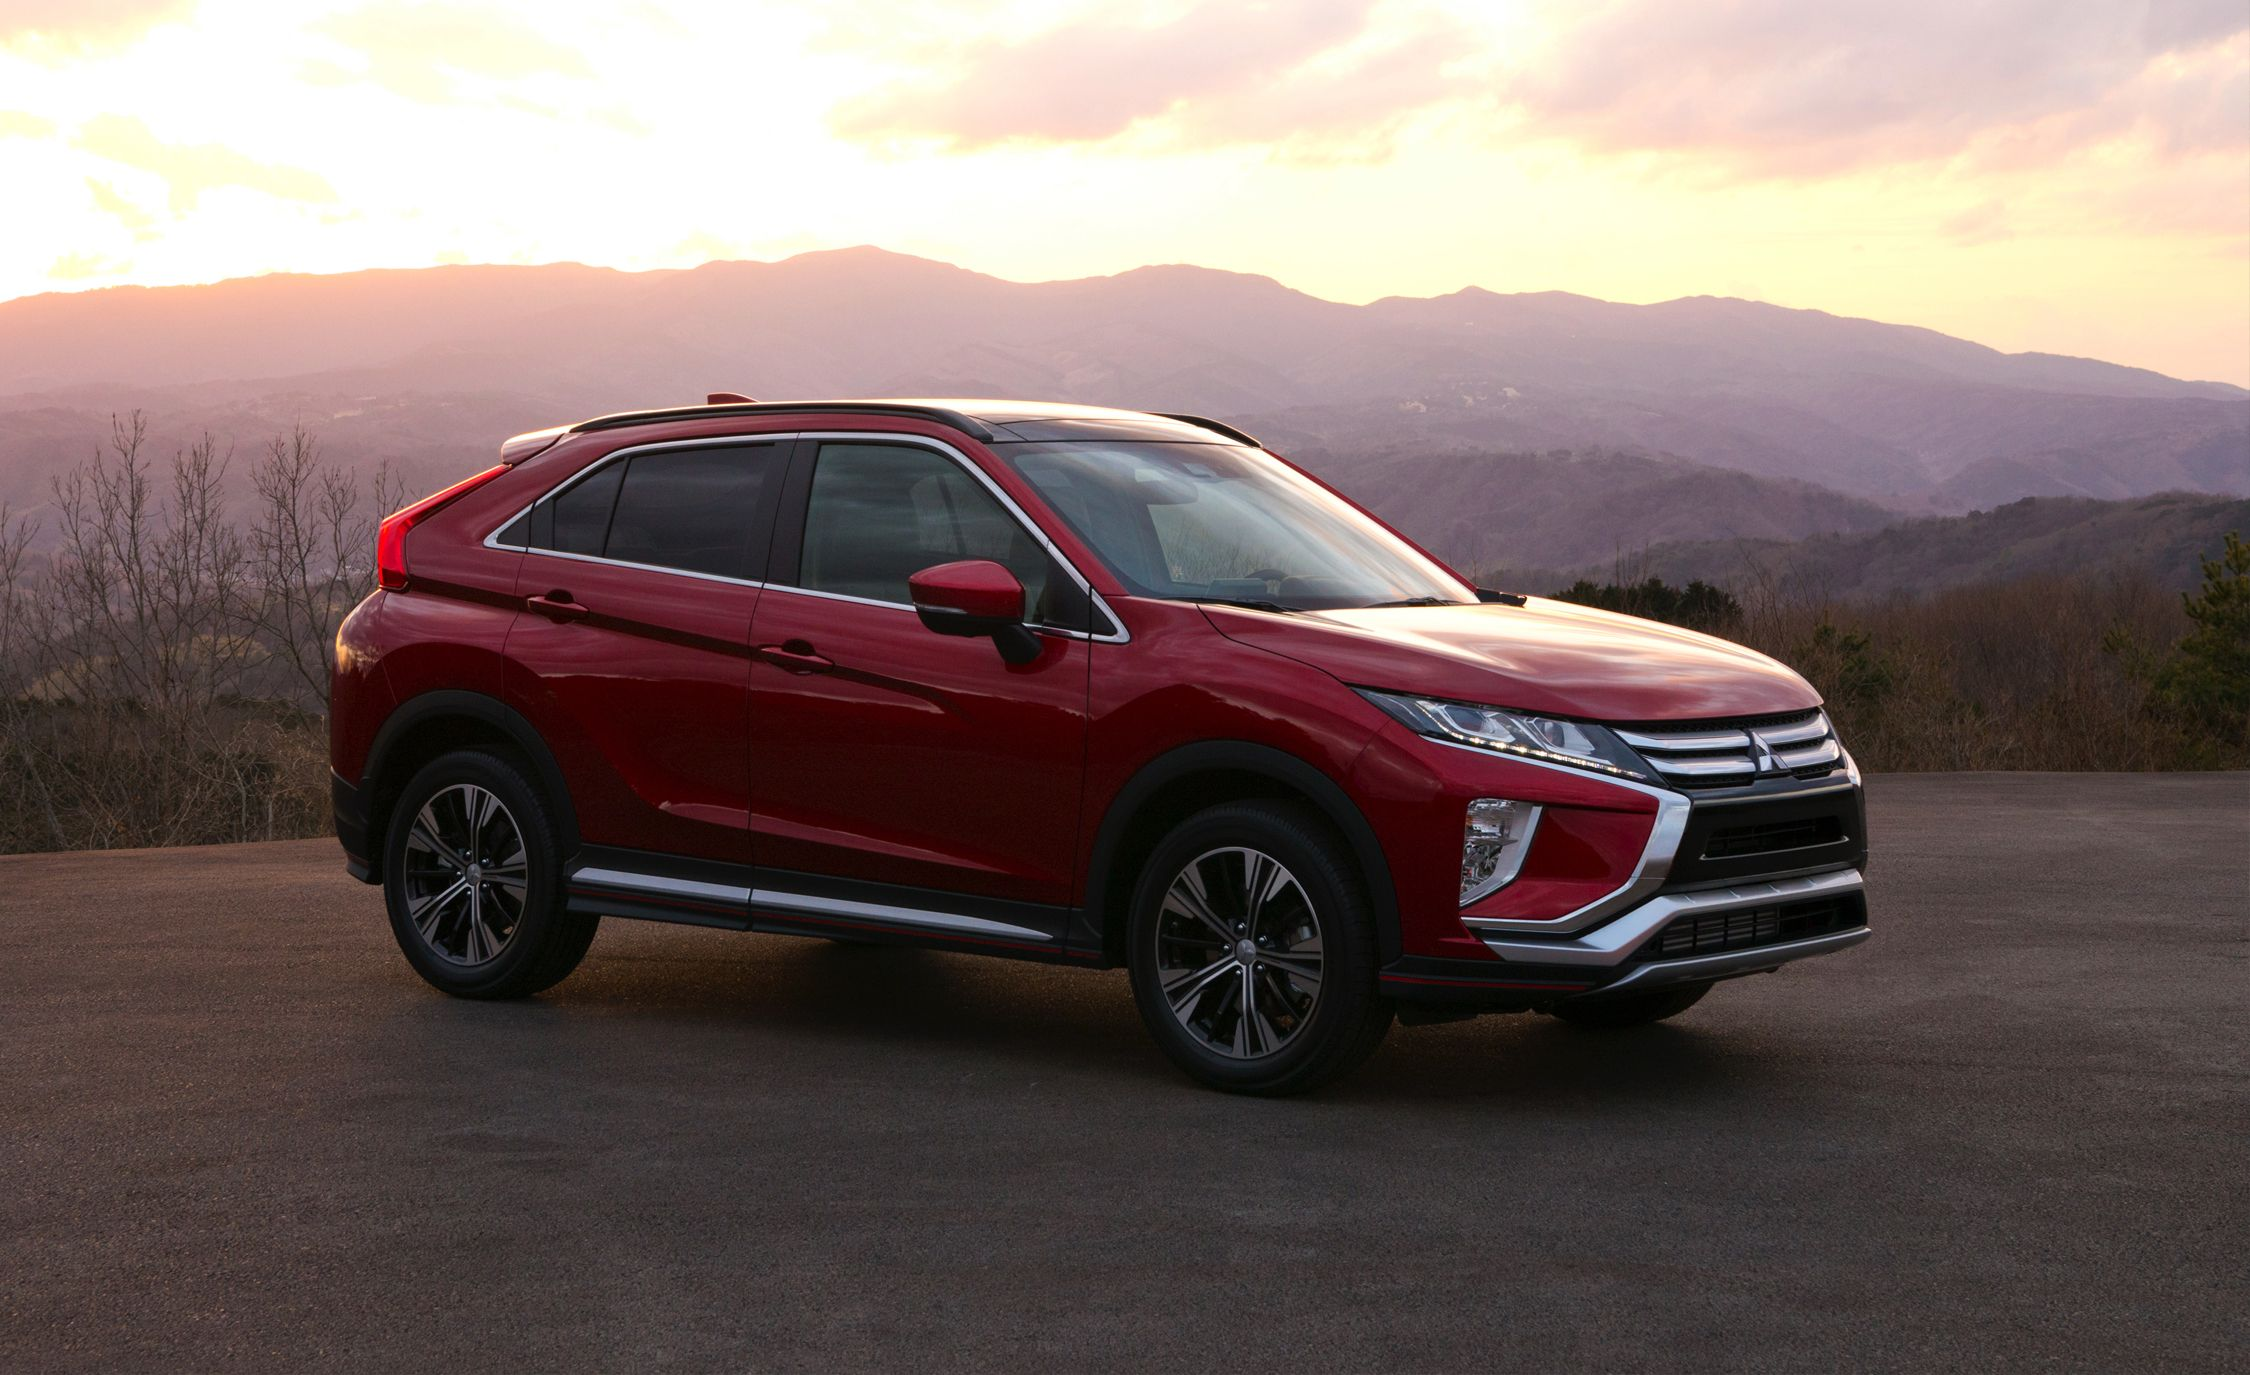 2018 Mitsubishi Eclipse Cross: A New Small SUV with an Old Name